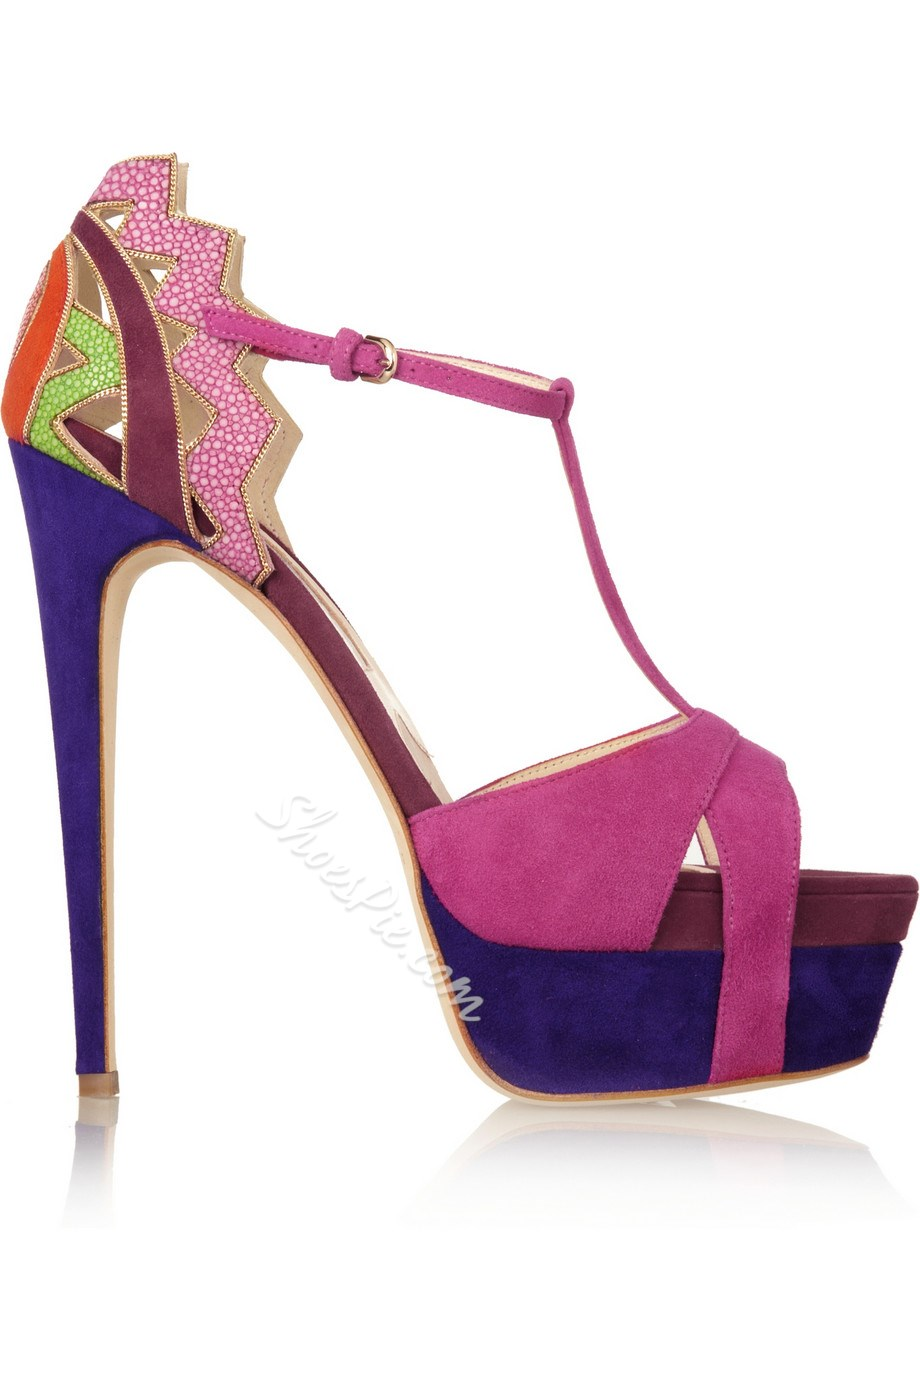 Glamorous Natural Stiletto Heels Pink Dress Sandals